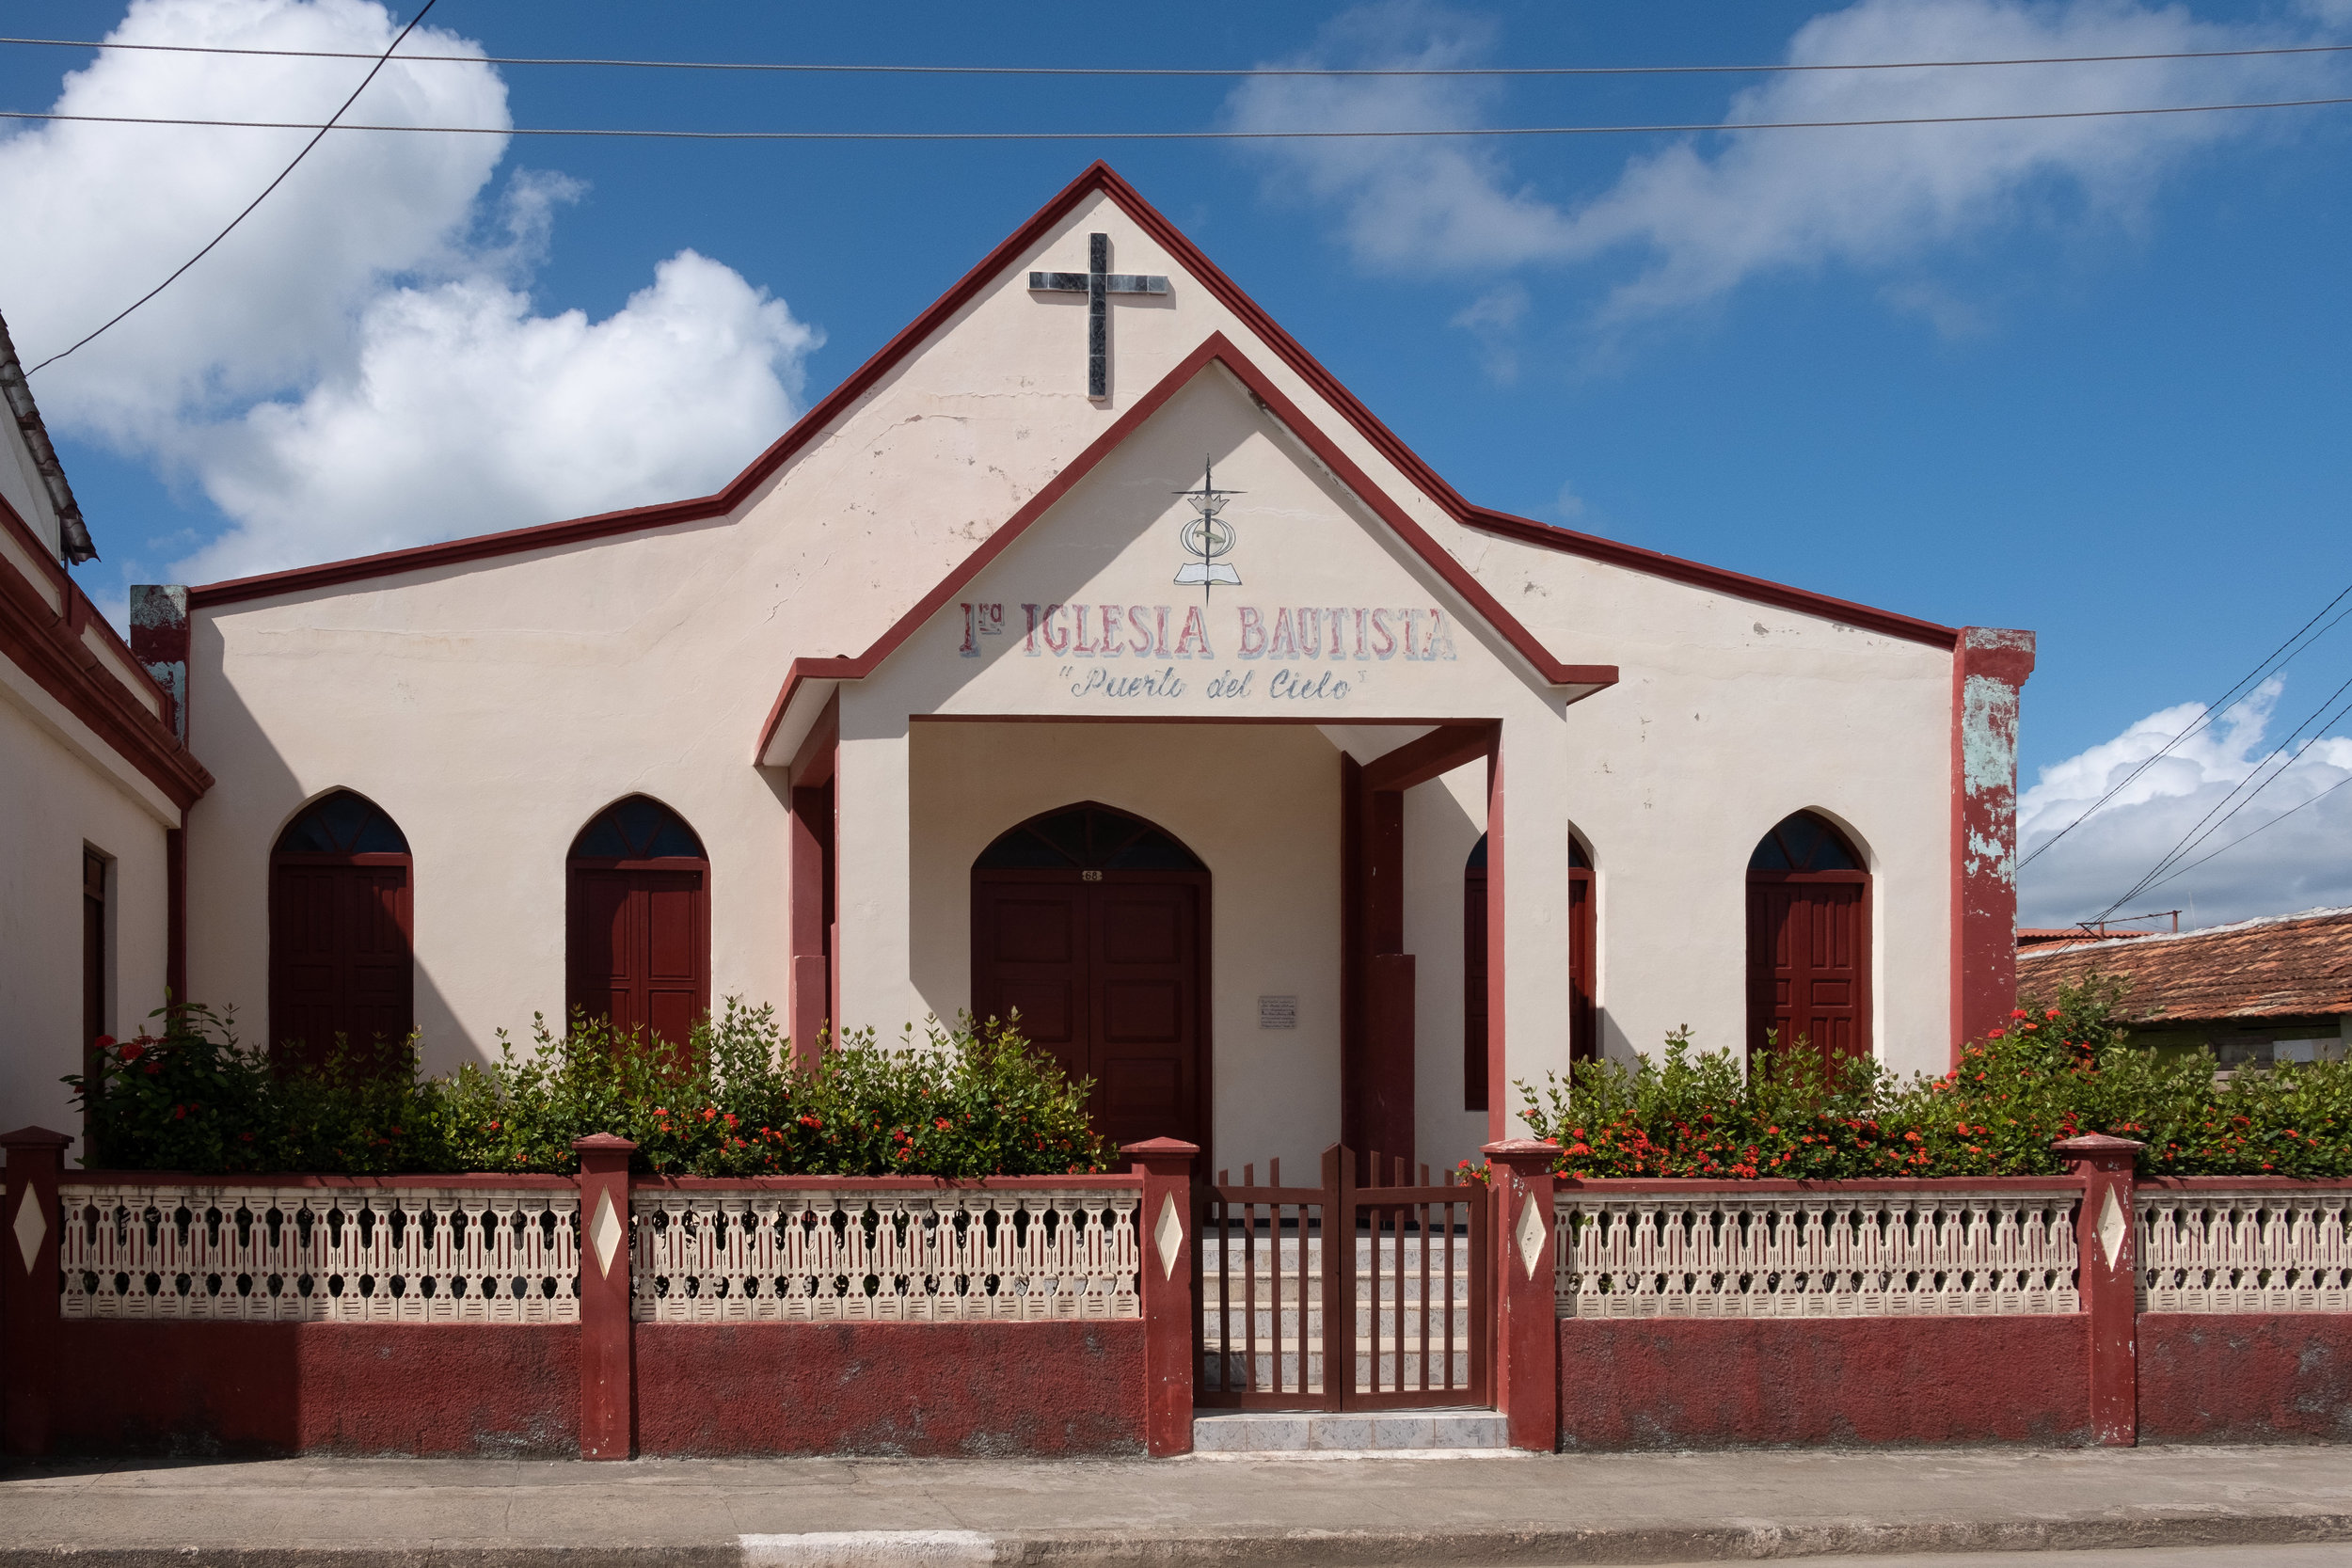 1st Baptist Church, Baracoa. Our partner for the coming year.